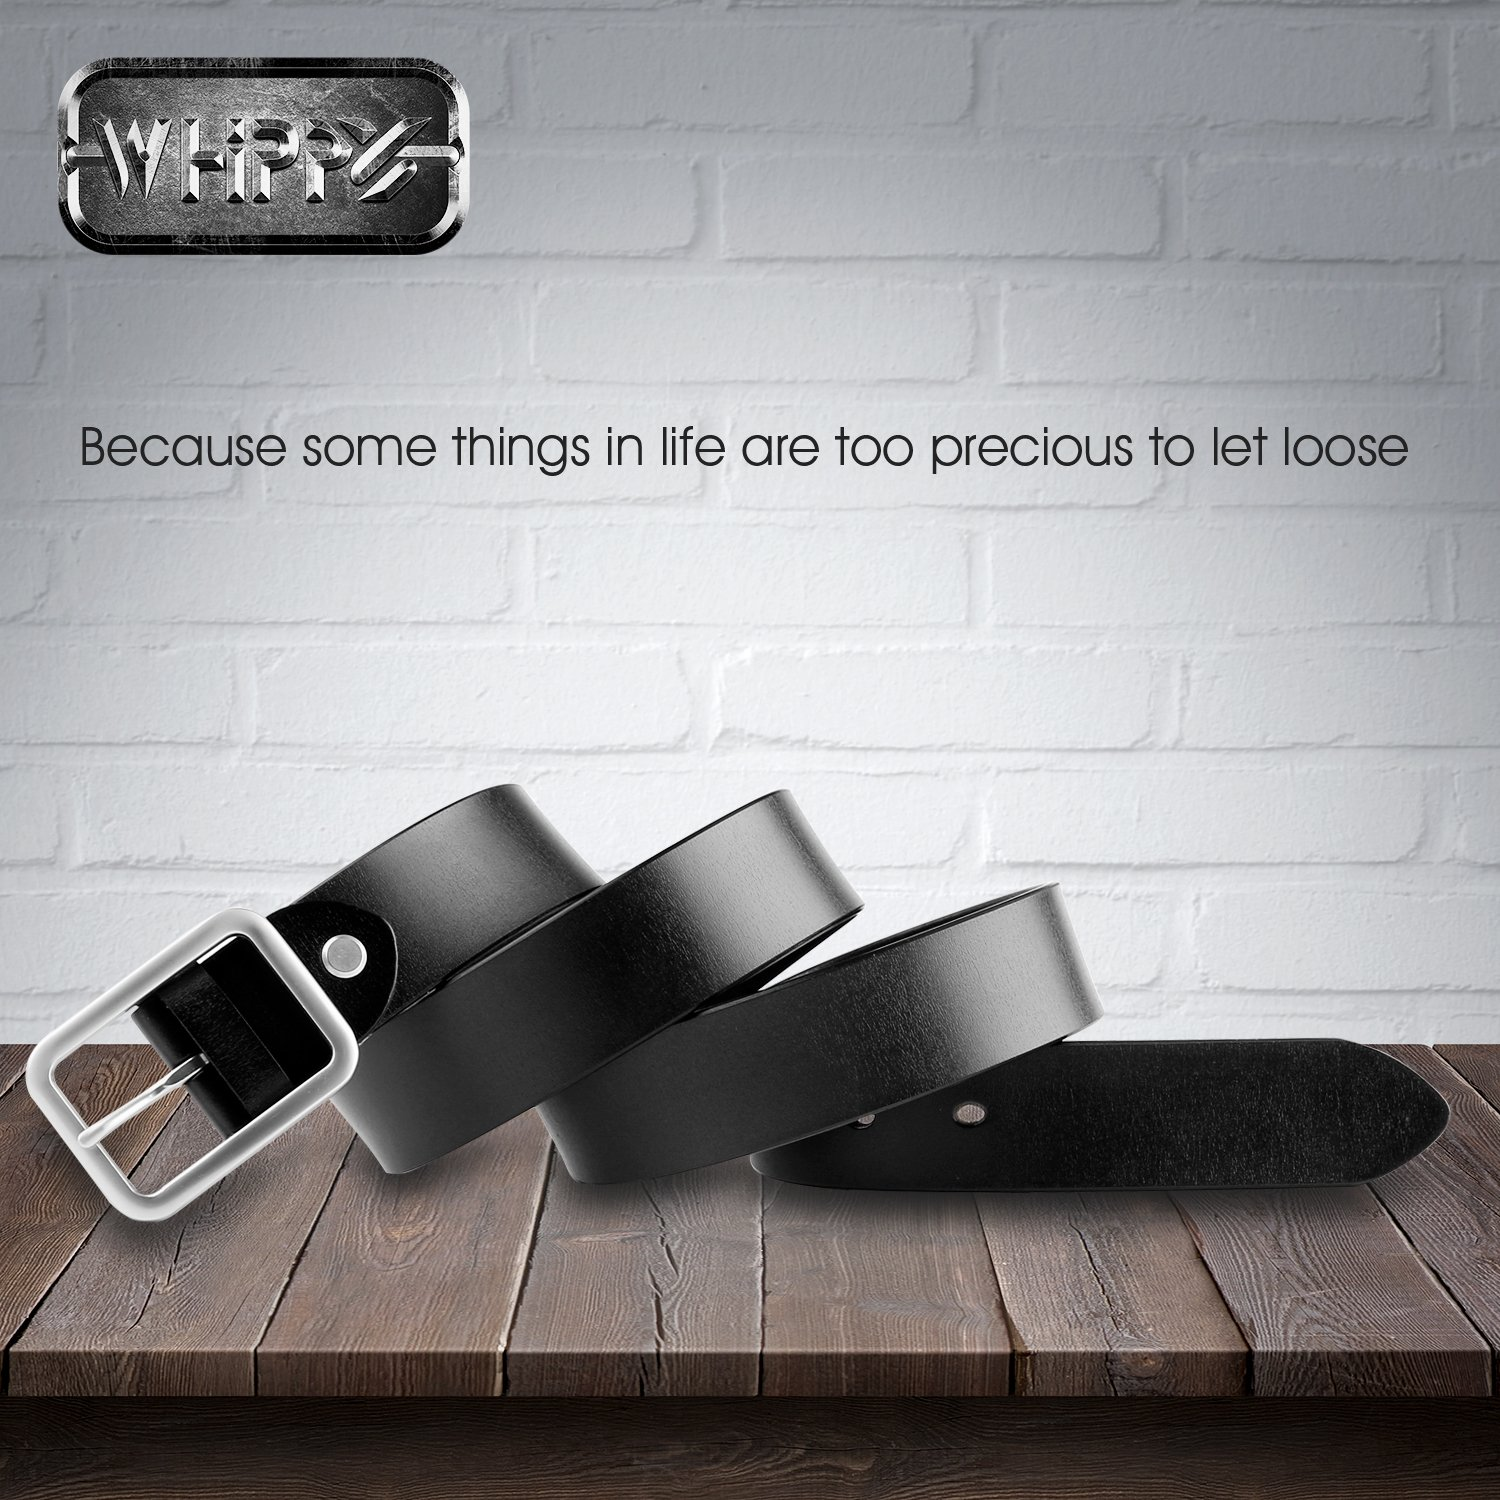 WHIPPY New Arrival Jeans Belt for Women Genuine Leather Belt with Pin Buckle, Black, 1.3''wide, Suit Pant Size 25''-29'' by Whippy (Image #3)